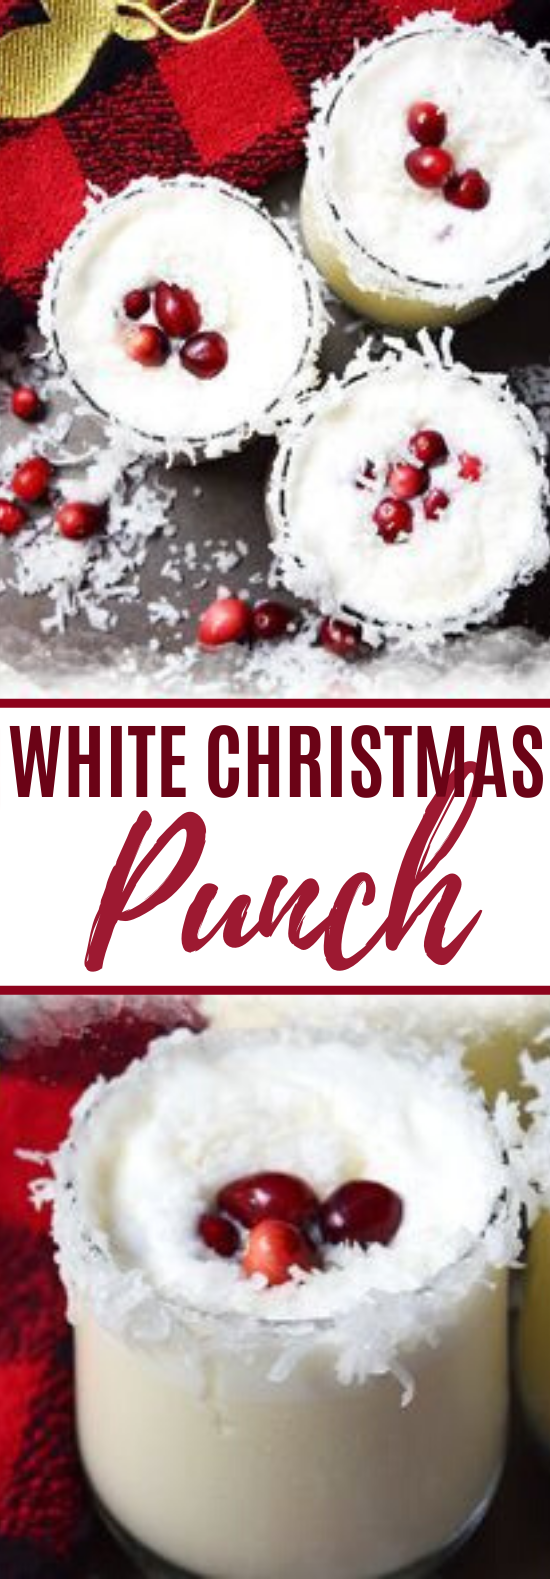 White Christmas Punch #drinks #recipe #nonalcoholic #punch #holiday